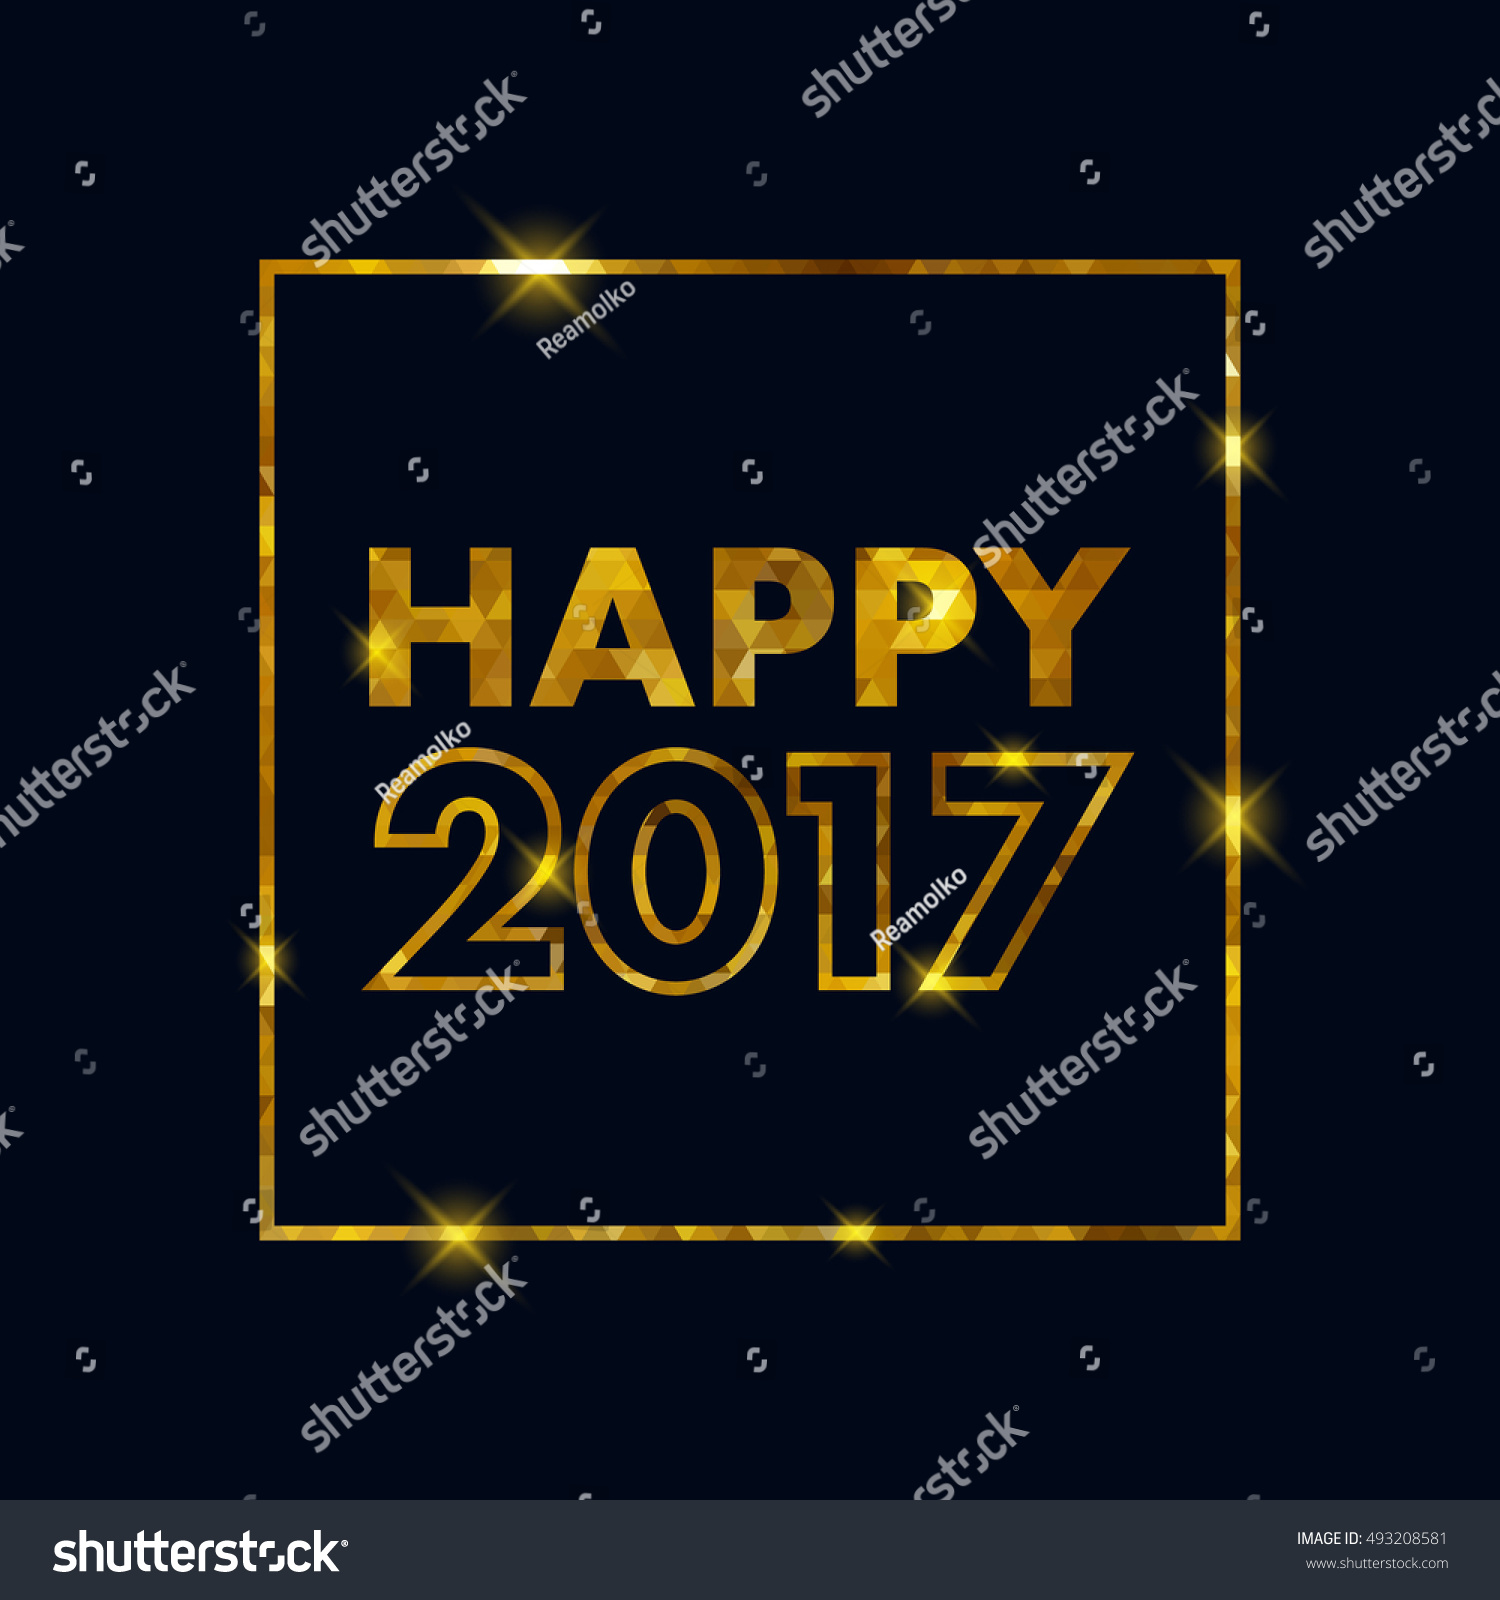 Golden glow 2017 new year background illustration. Calendar greeting card design typography template. Square frame with stars and sparkles. #493208581